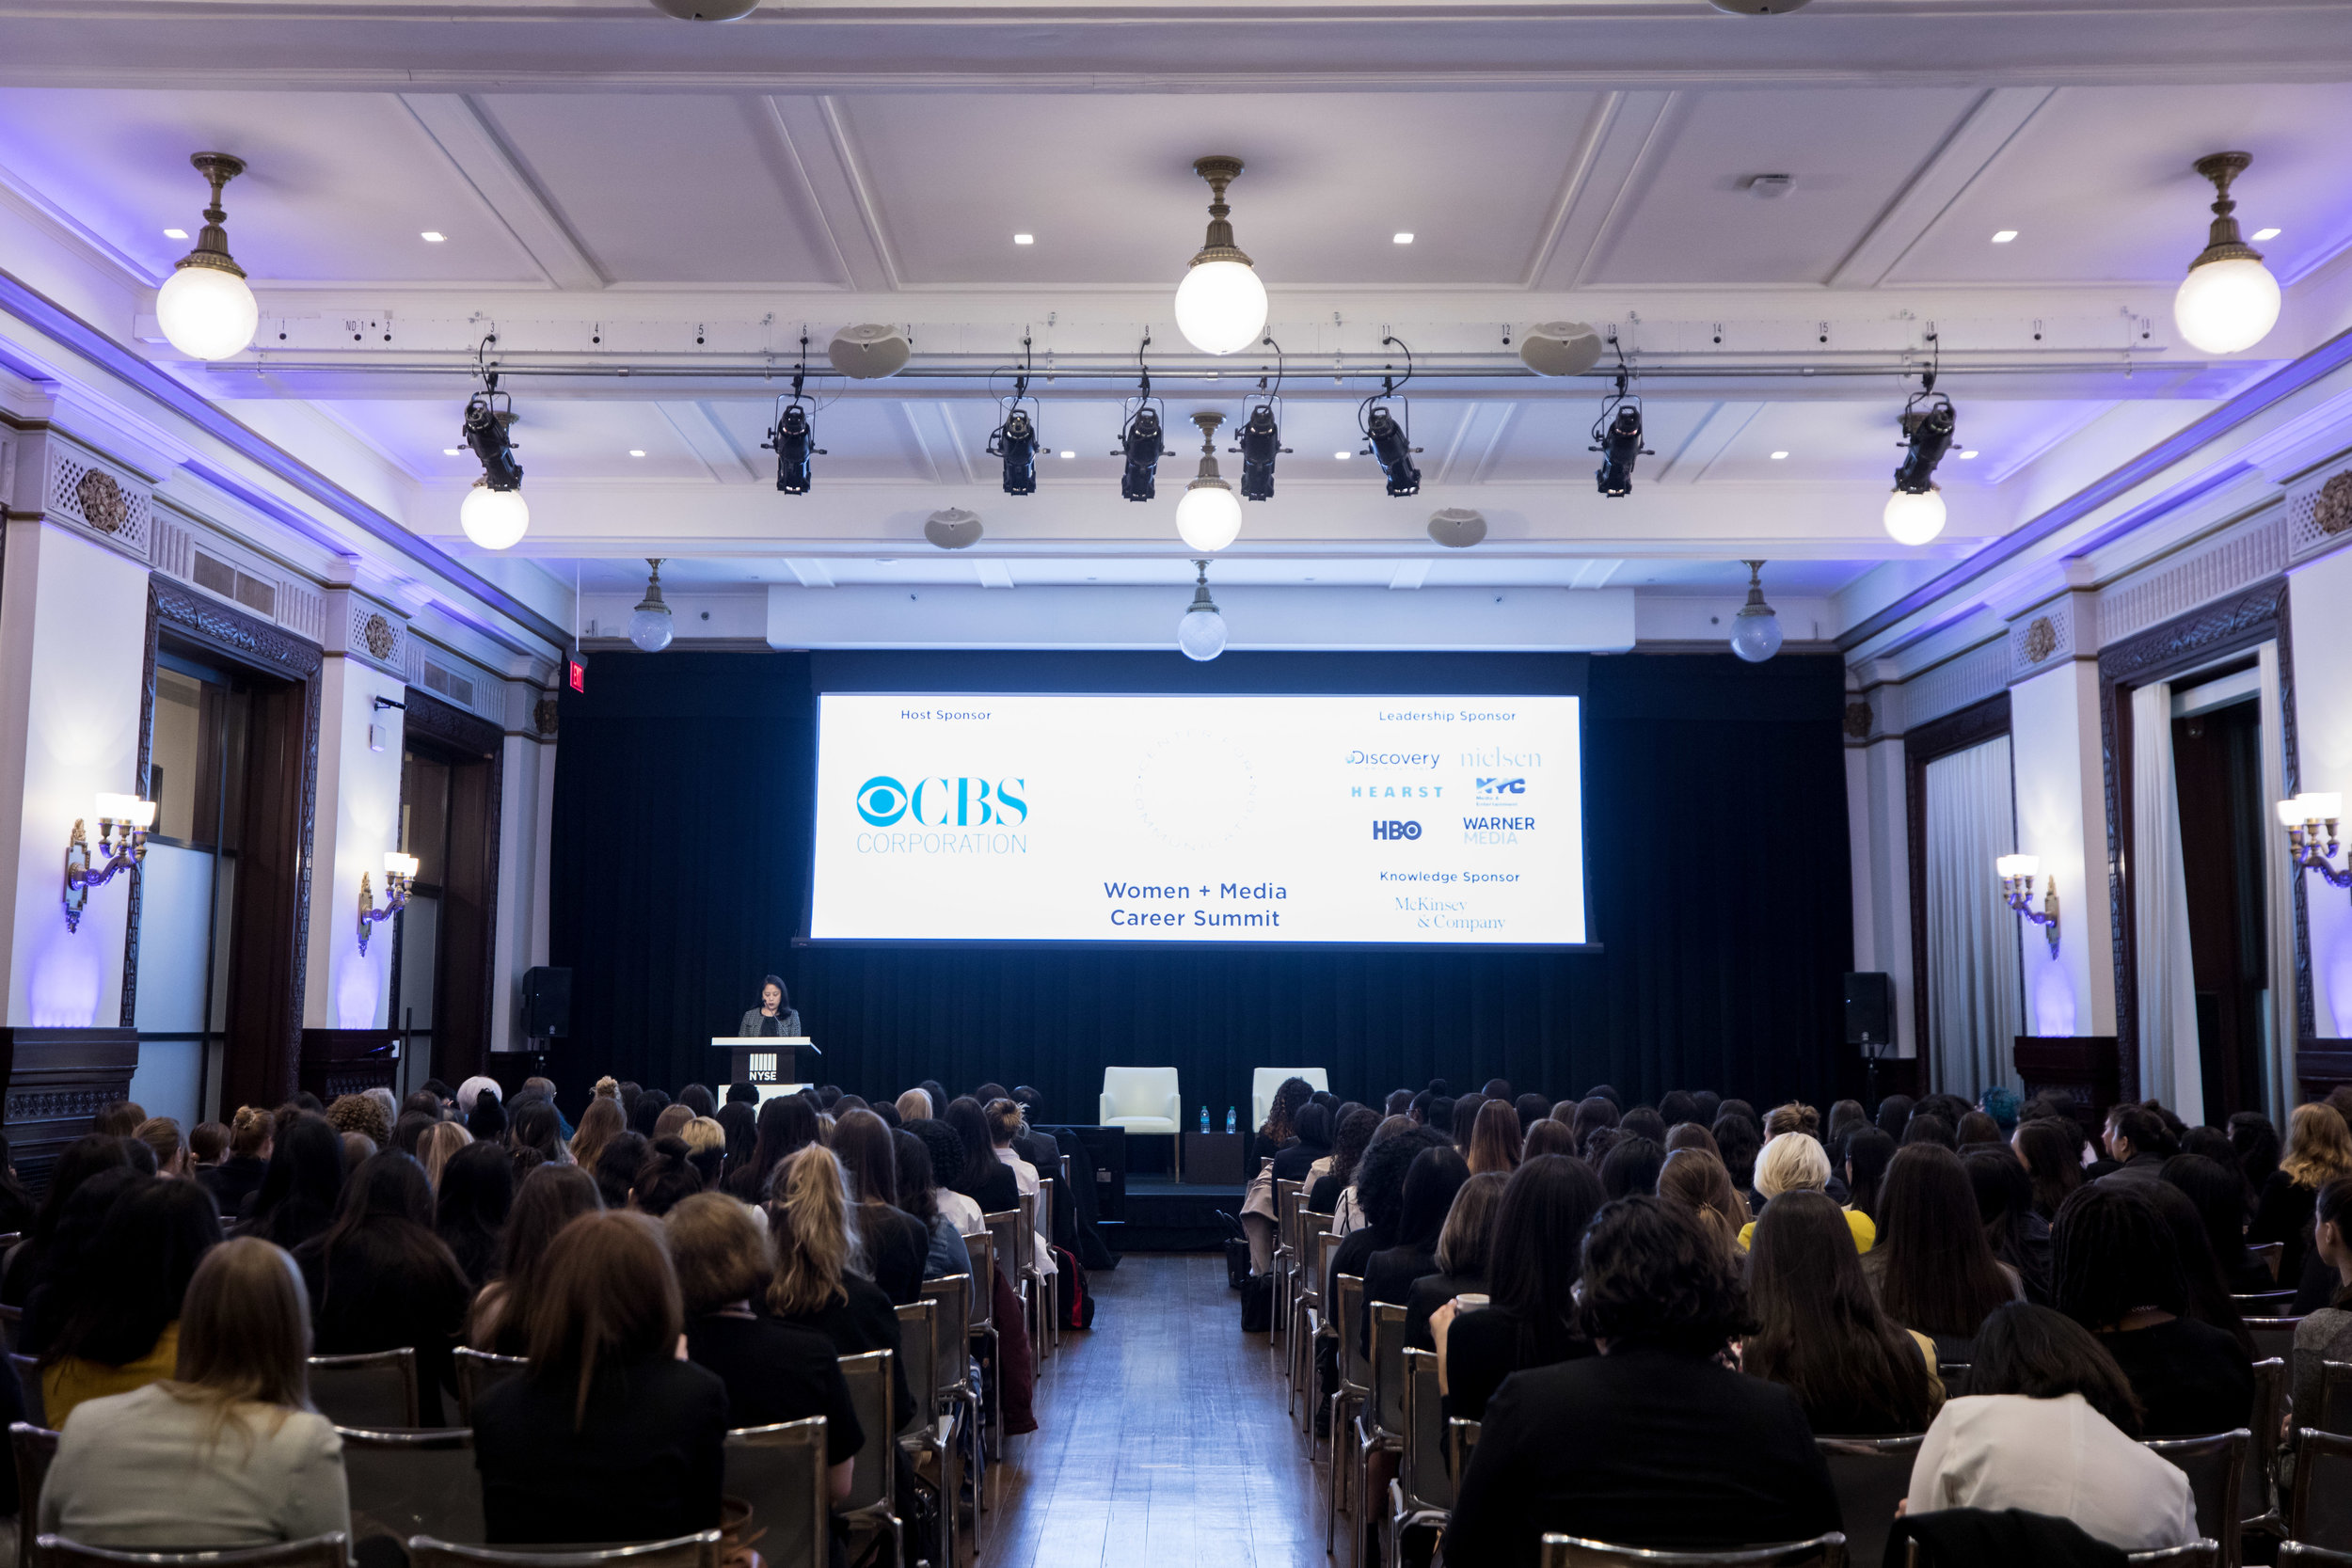 The New York Stock Exchange CBS Corporation for the Woman in Media Event.